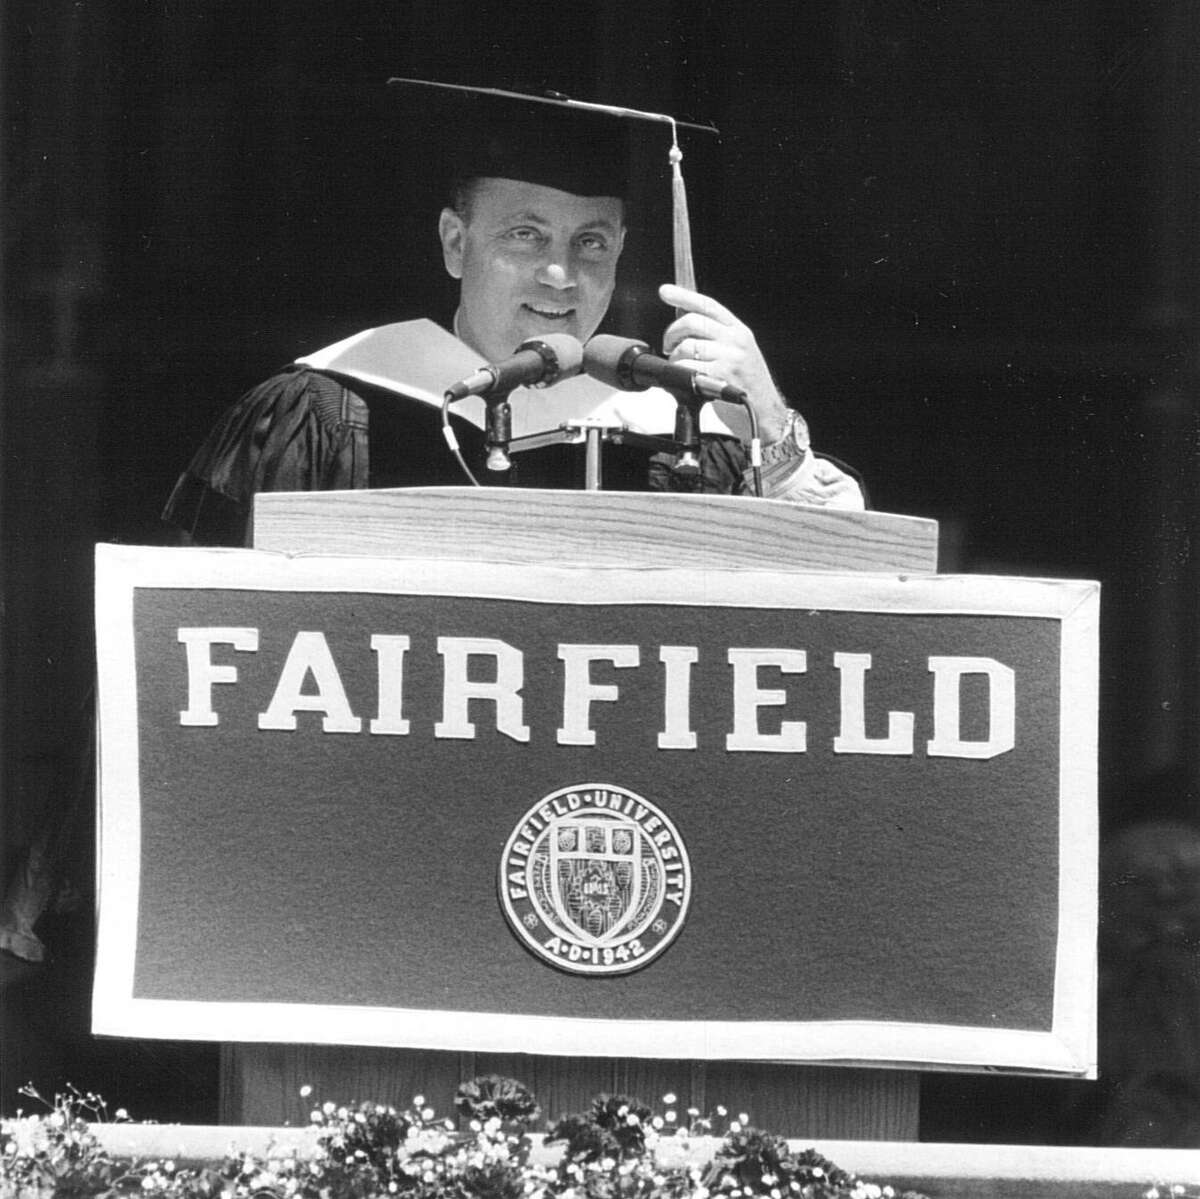 BILLY JOEL - FAIRFIELD UNIVERSITY, 1991 Speaker Billy Joel delivers an address to the Fairfield University Class of 1991, in May of 1991.